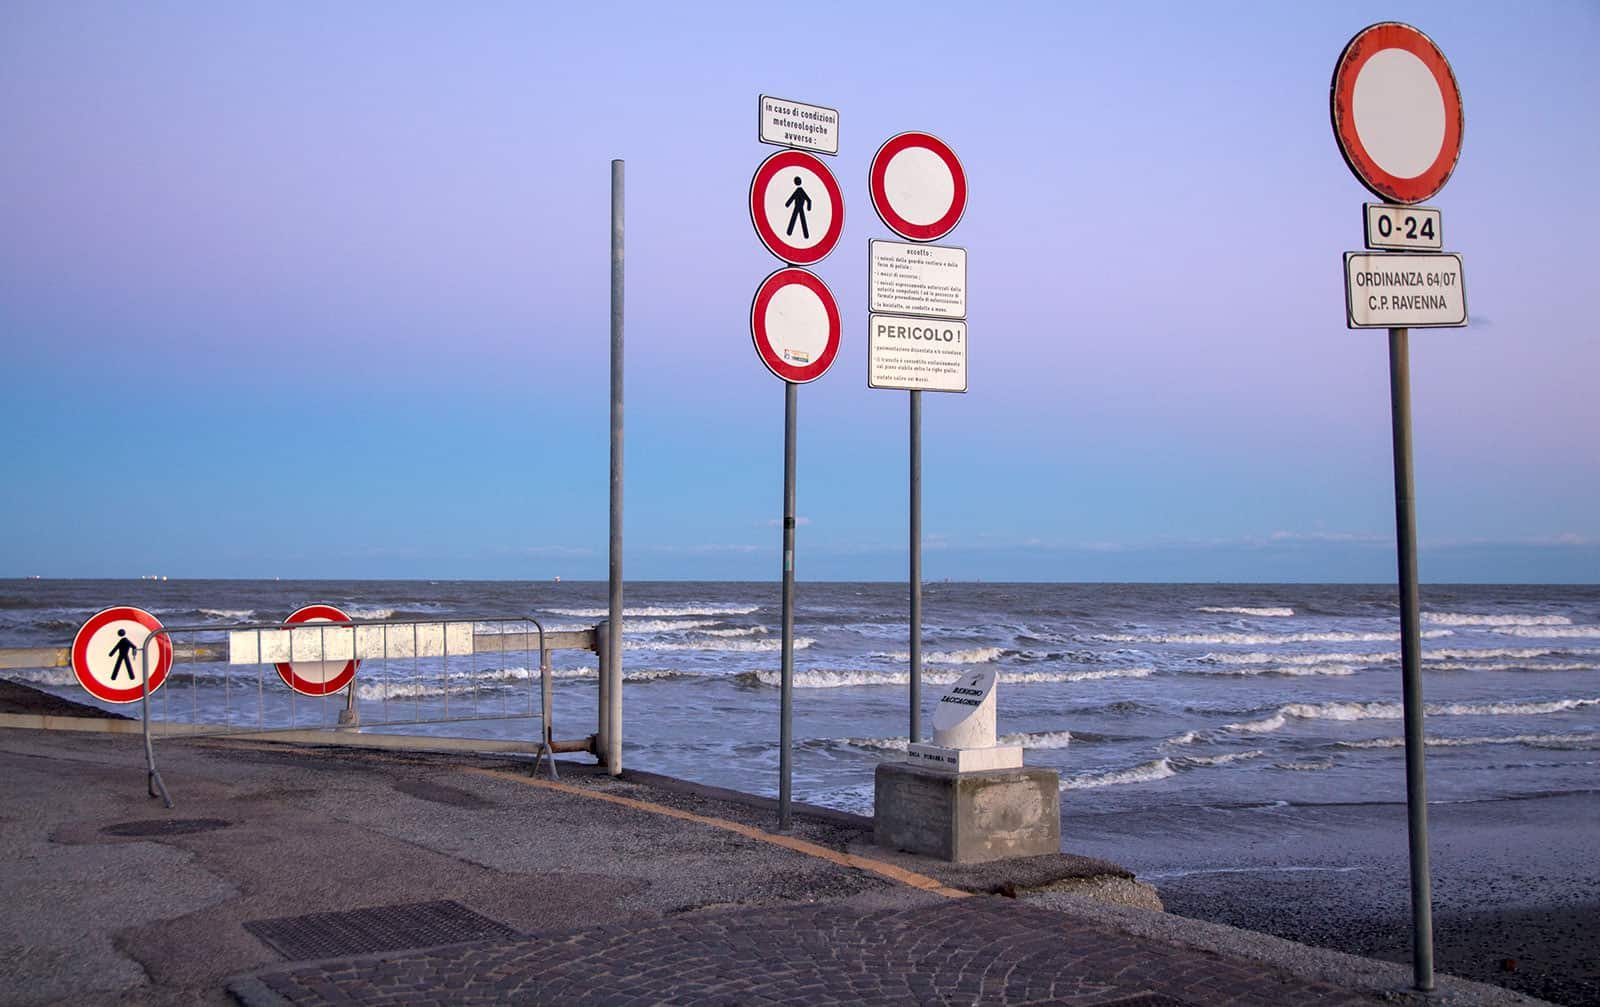 On the Diga Sud pier, everything is forbidden, more than once!